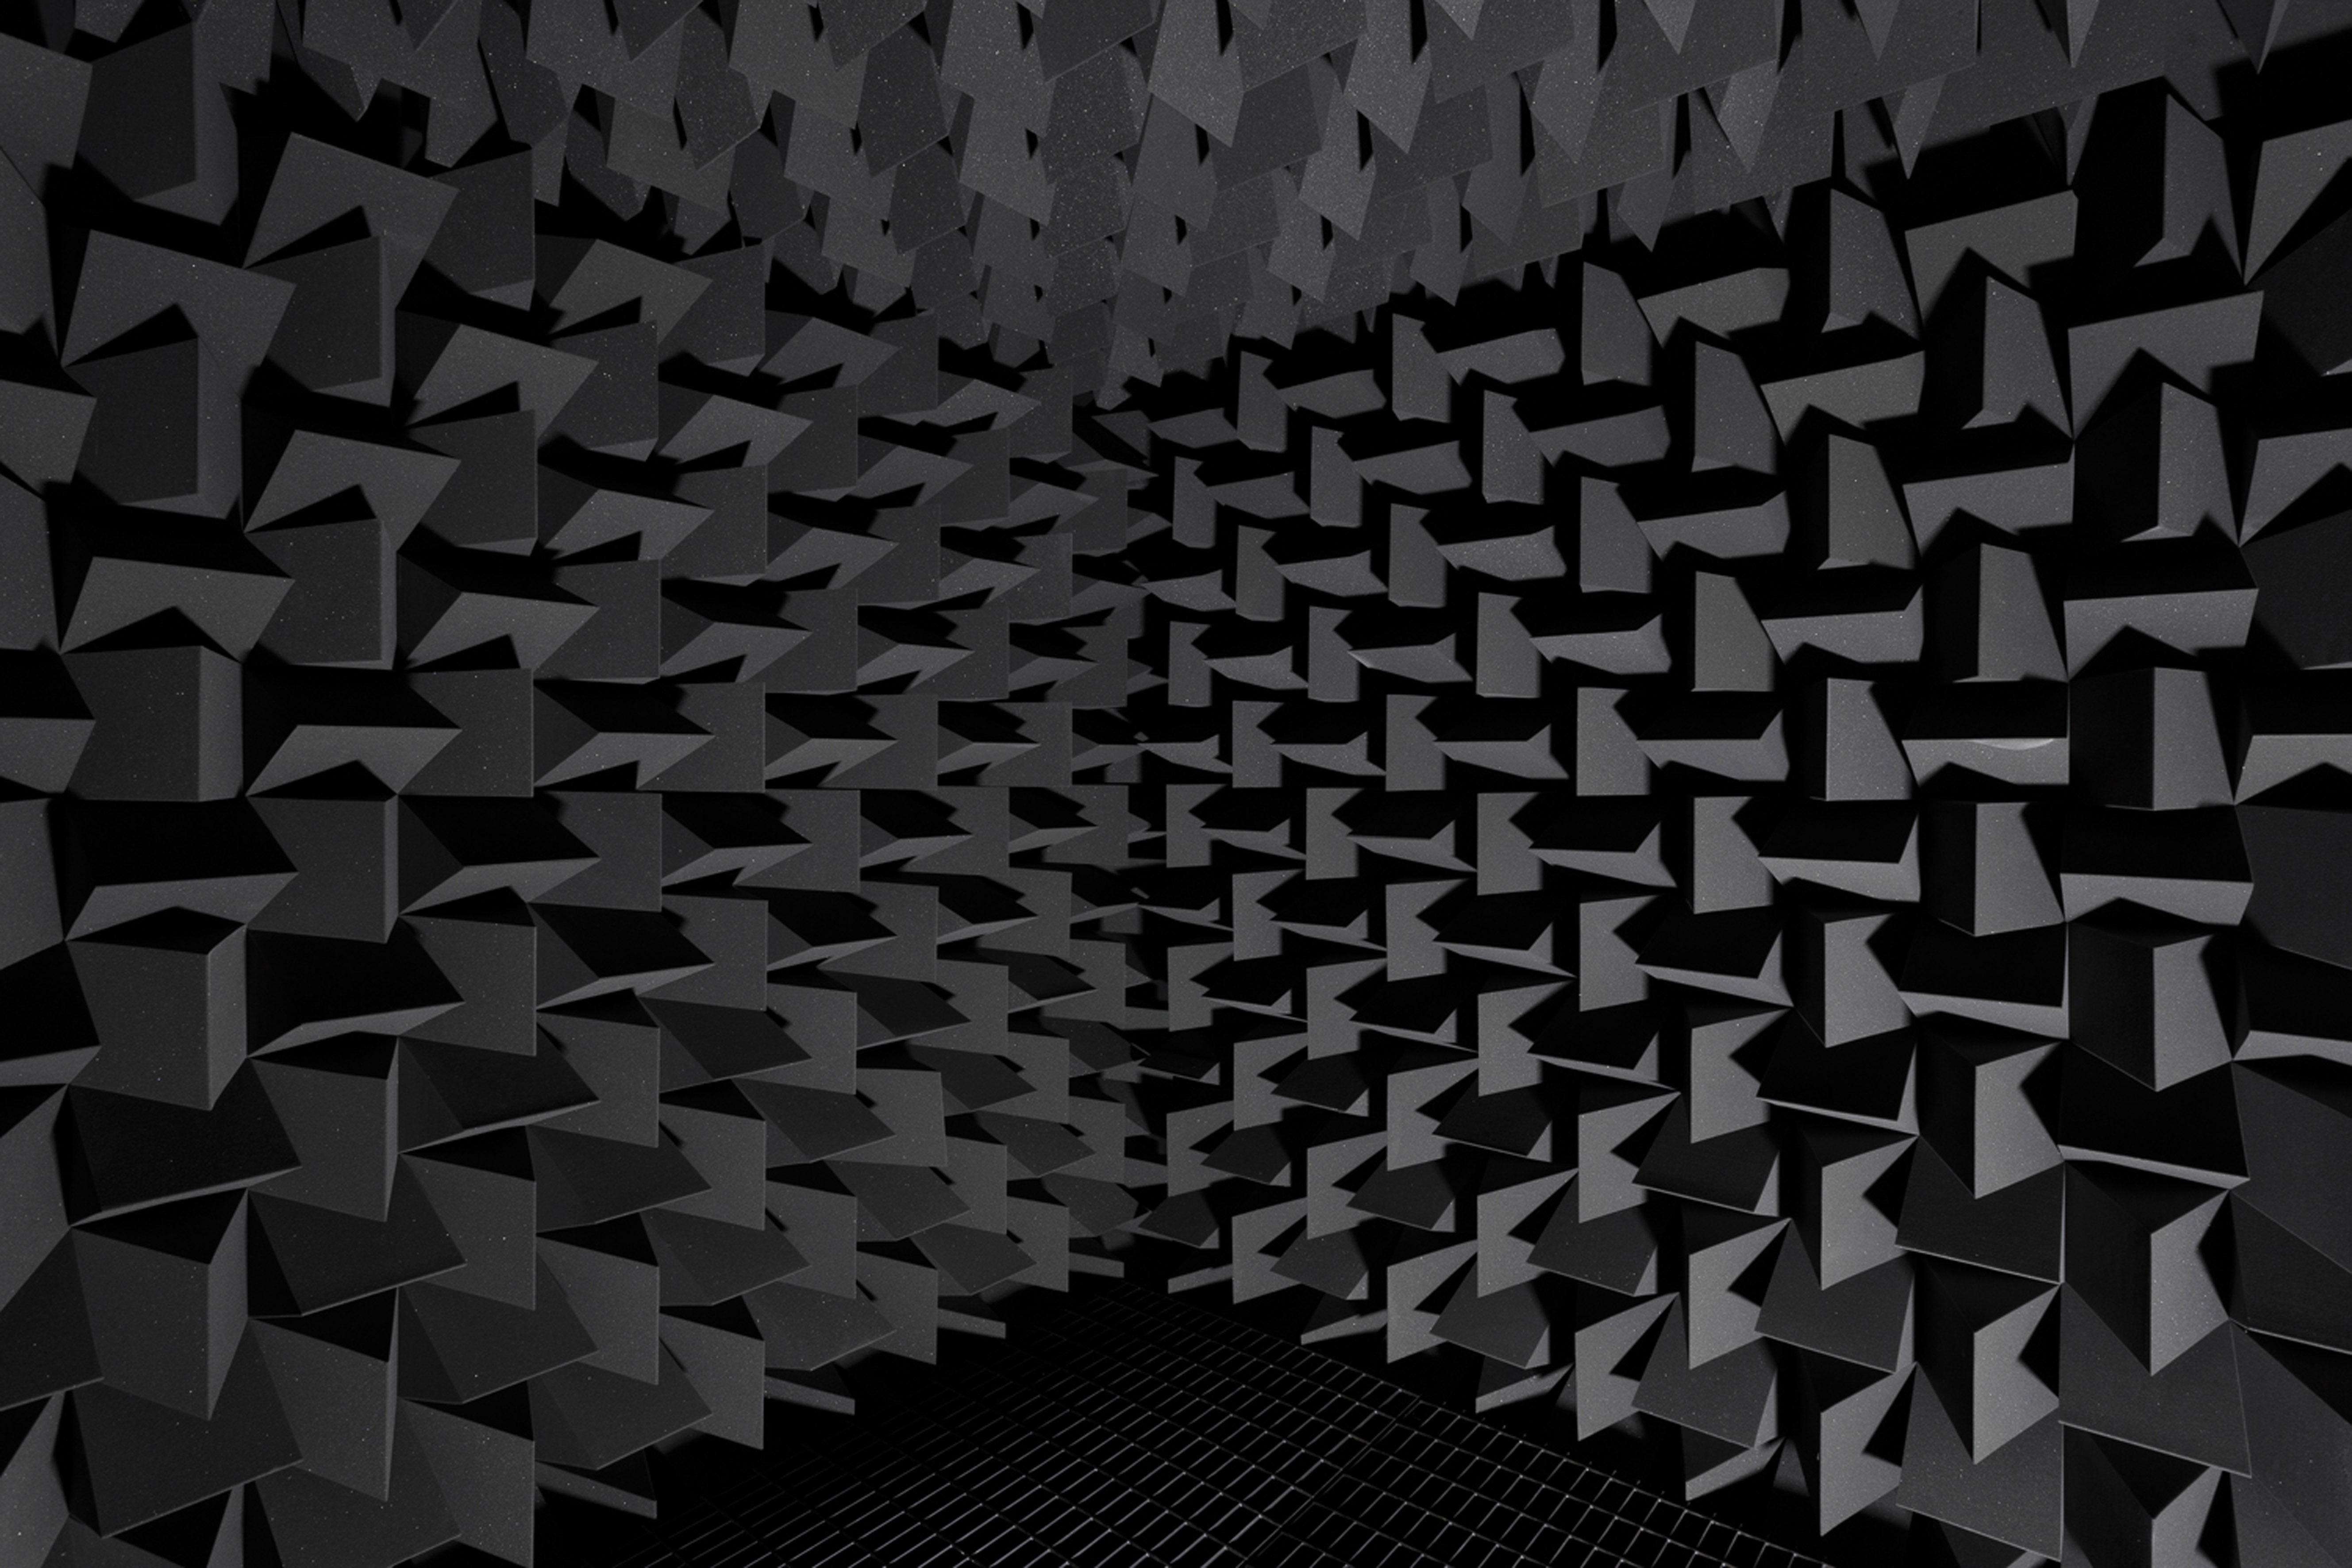 Haroon Mirza hrm199_Chamber for Endogenous DMT (Collapsing the Wave Function), 2017. Tim Bowditch, courtesy the artist and ZC Low Res-7734